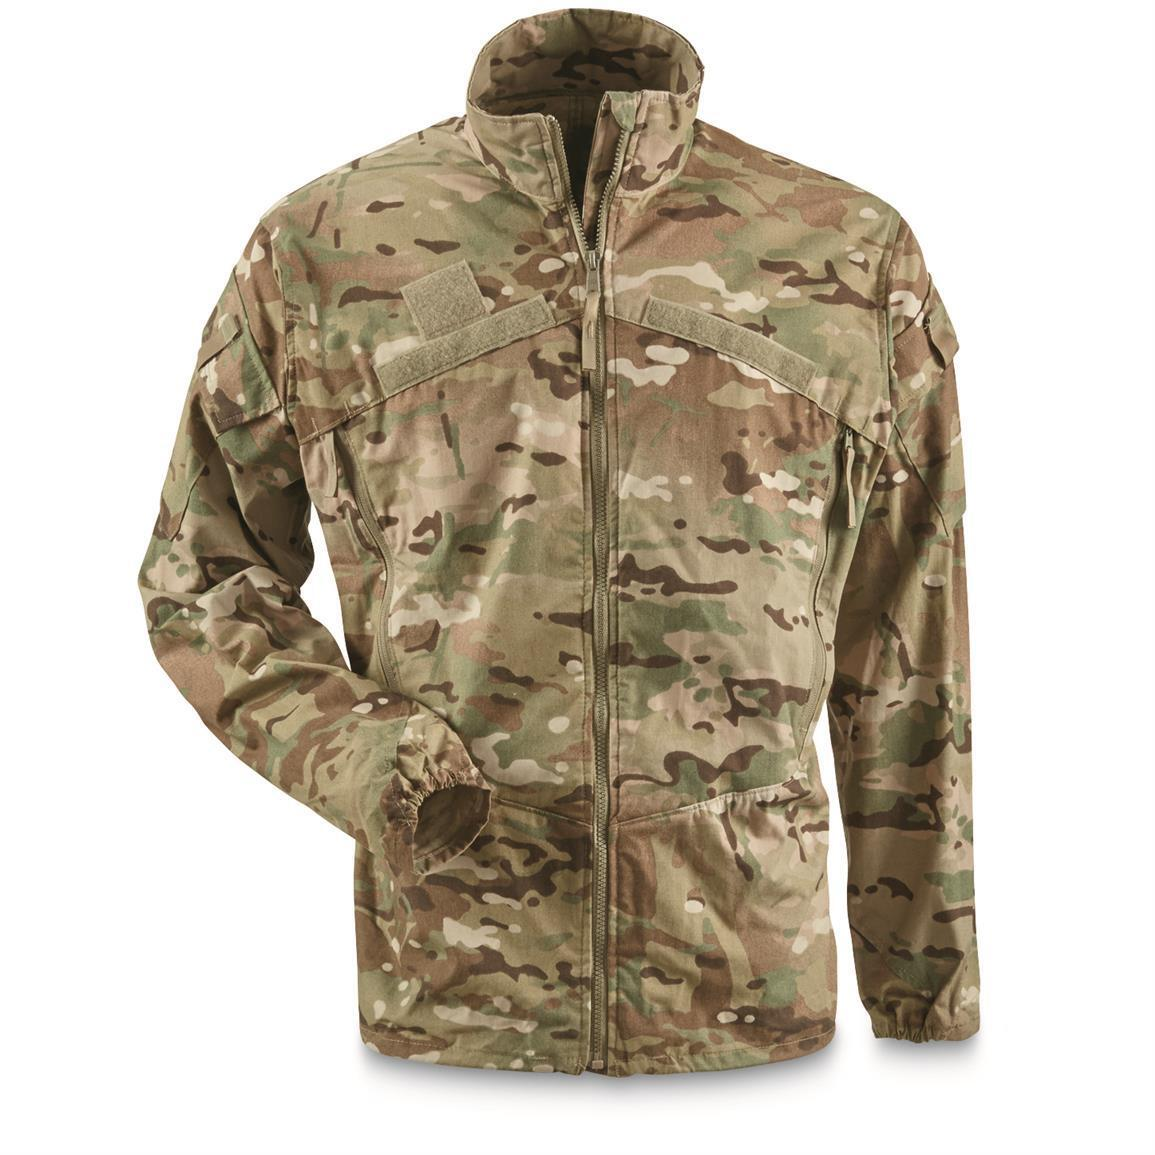 Us Army multicam ocp Ecwcs Gen III level 4 cazadora Chaqueta outdoor ll large Long